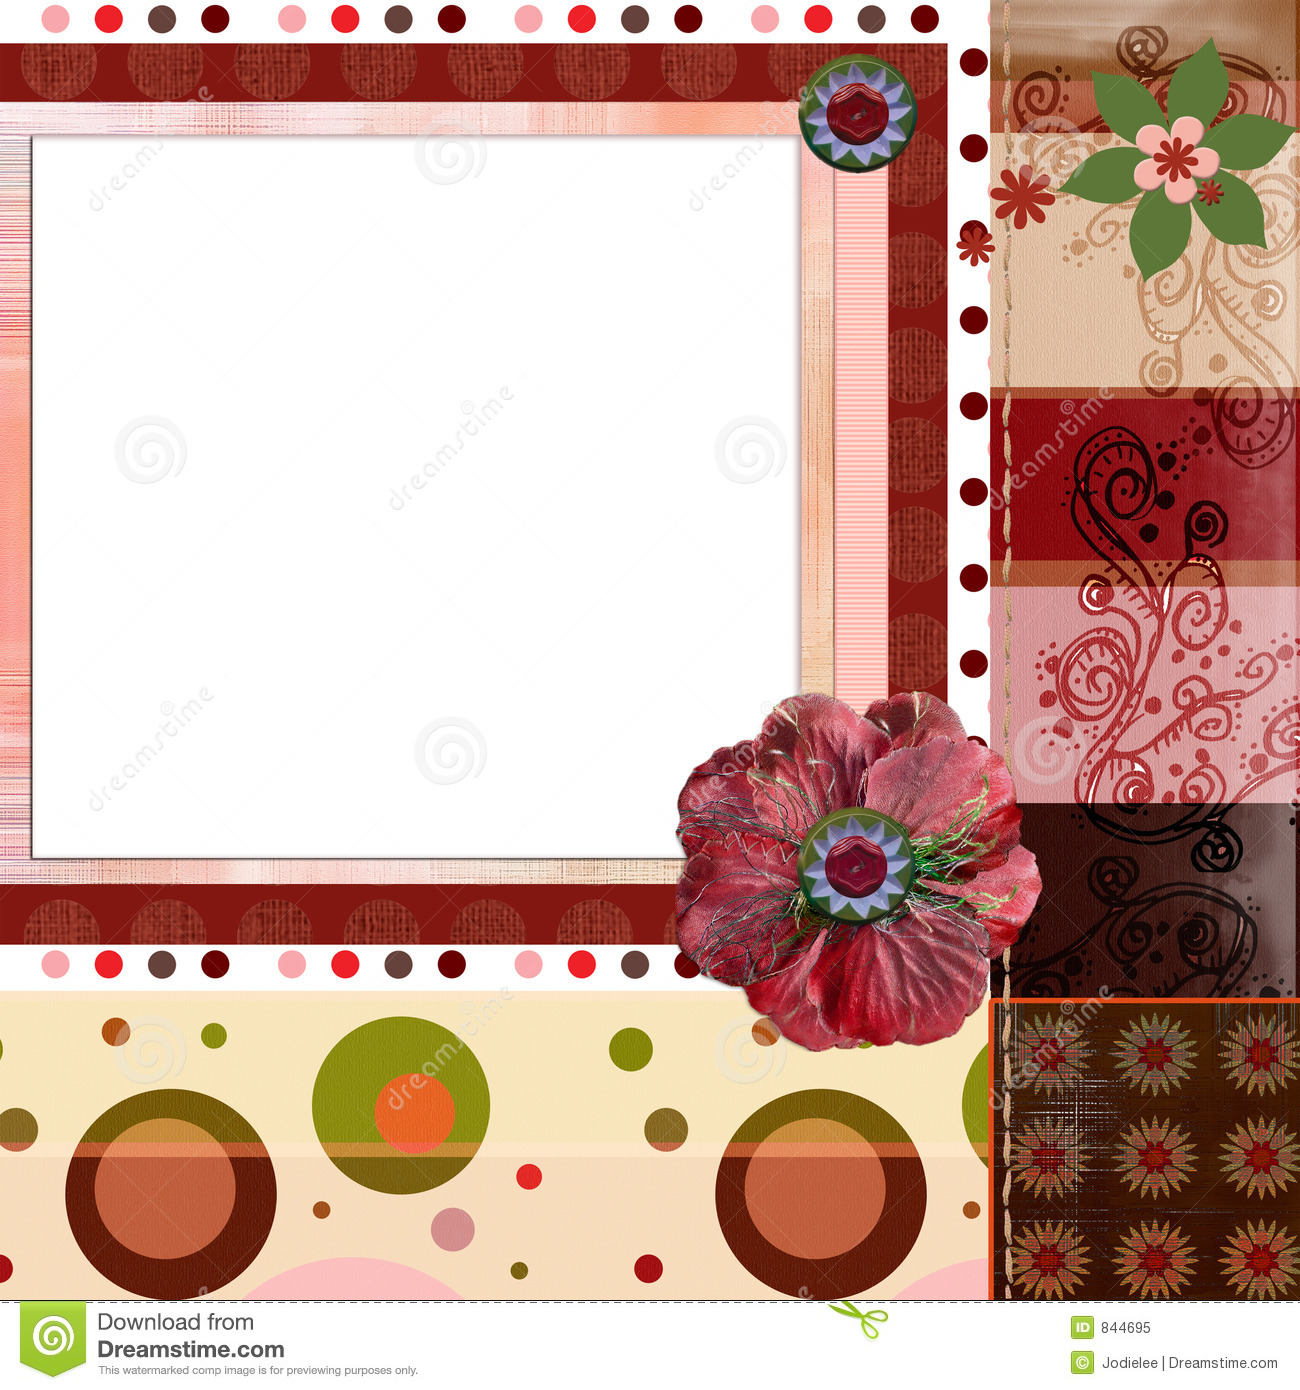 How to scrapbook 8x8 layouts - Bohemian Gypsy Style Scrapbook Album Page Layout 8x8 Inches Royalty Free Stock Photo